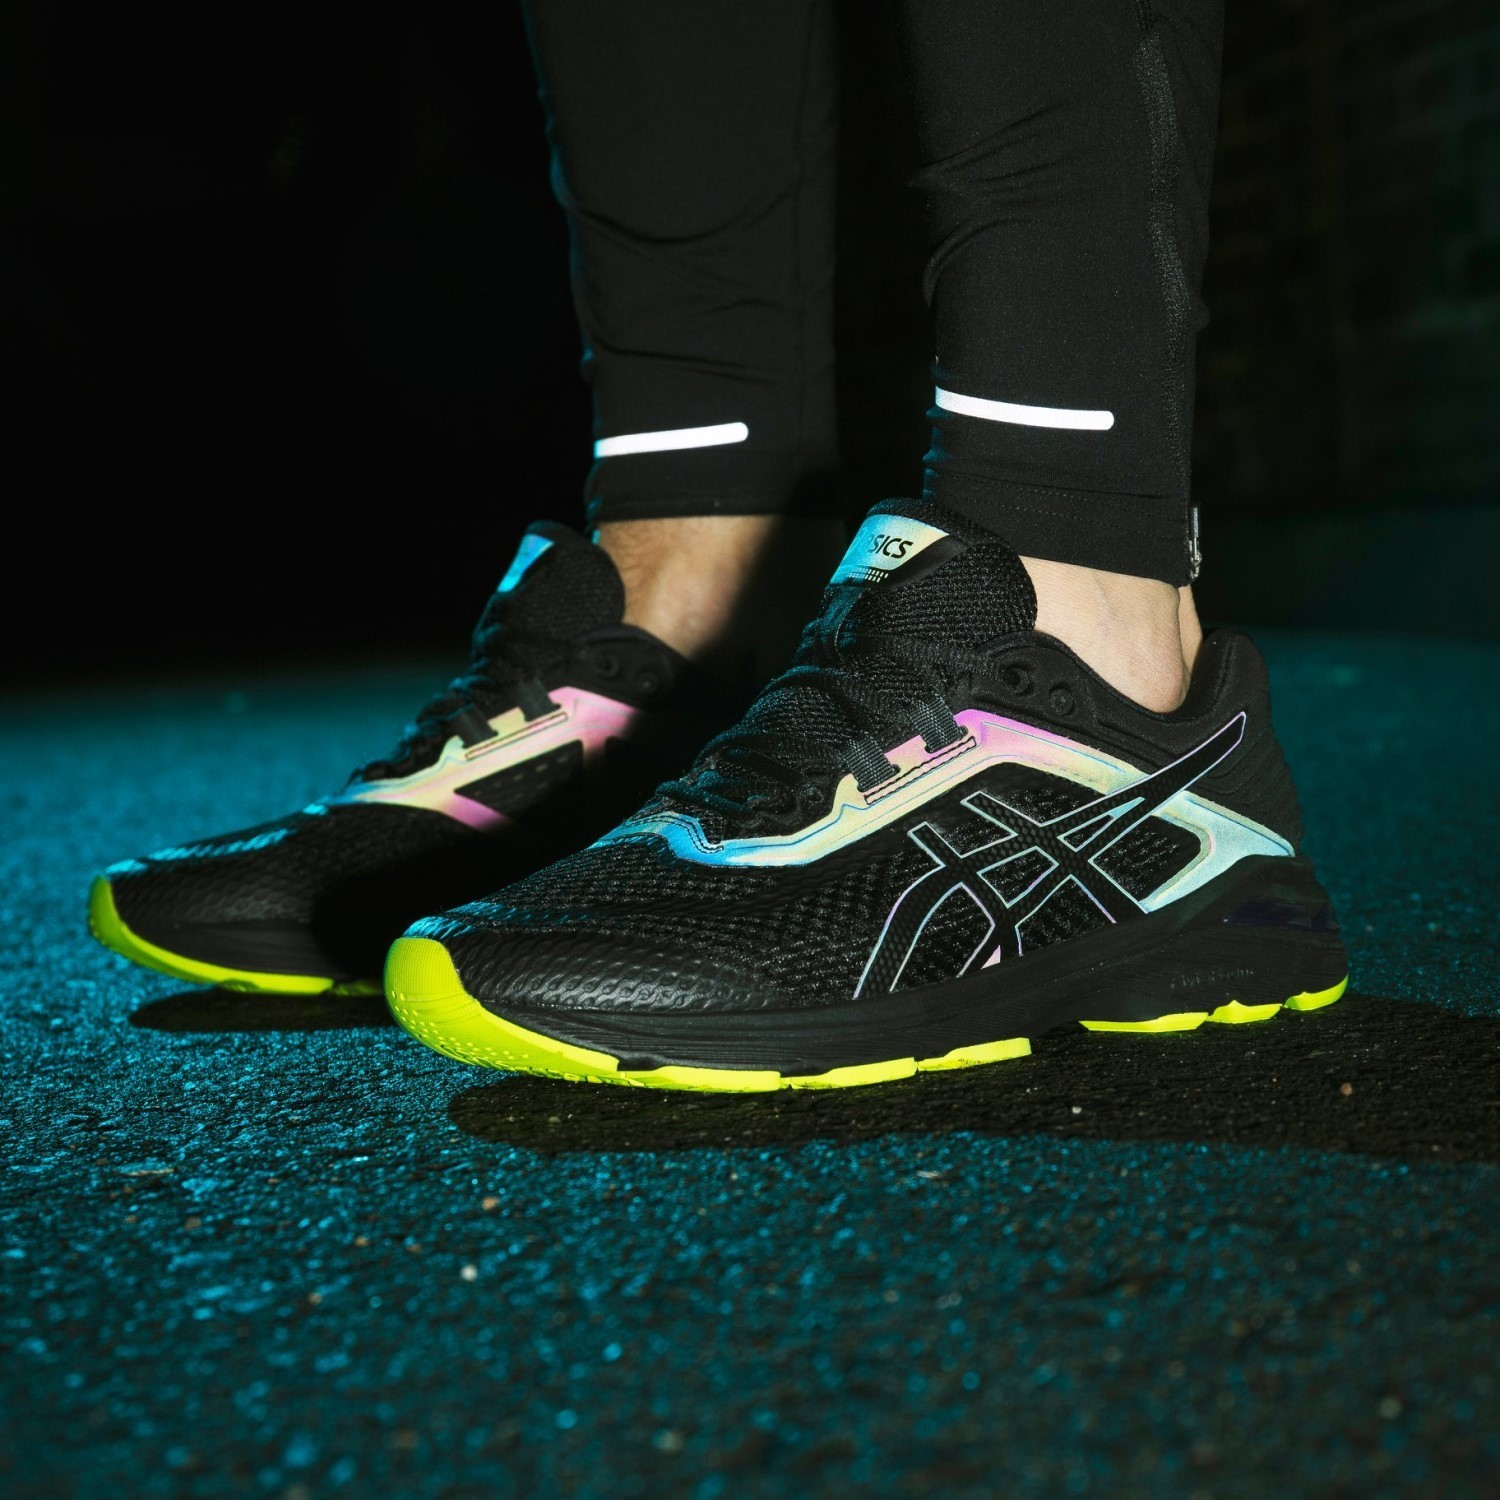 ASICS GT 2000 6 Lite Show Review: Run with a Lite Show on